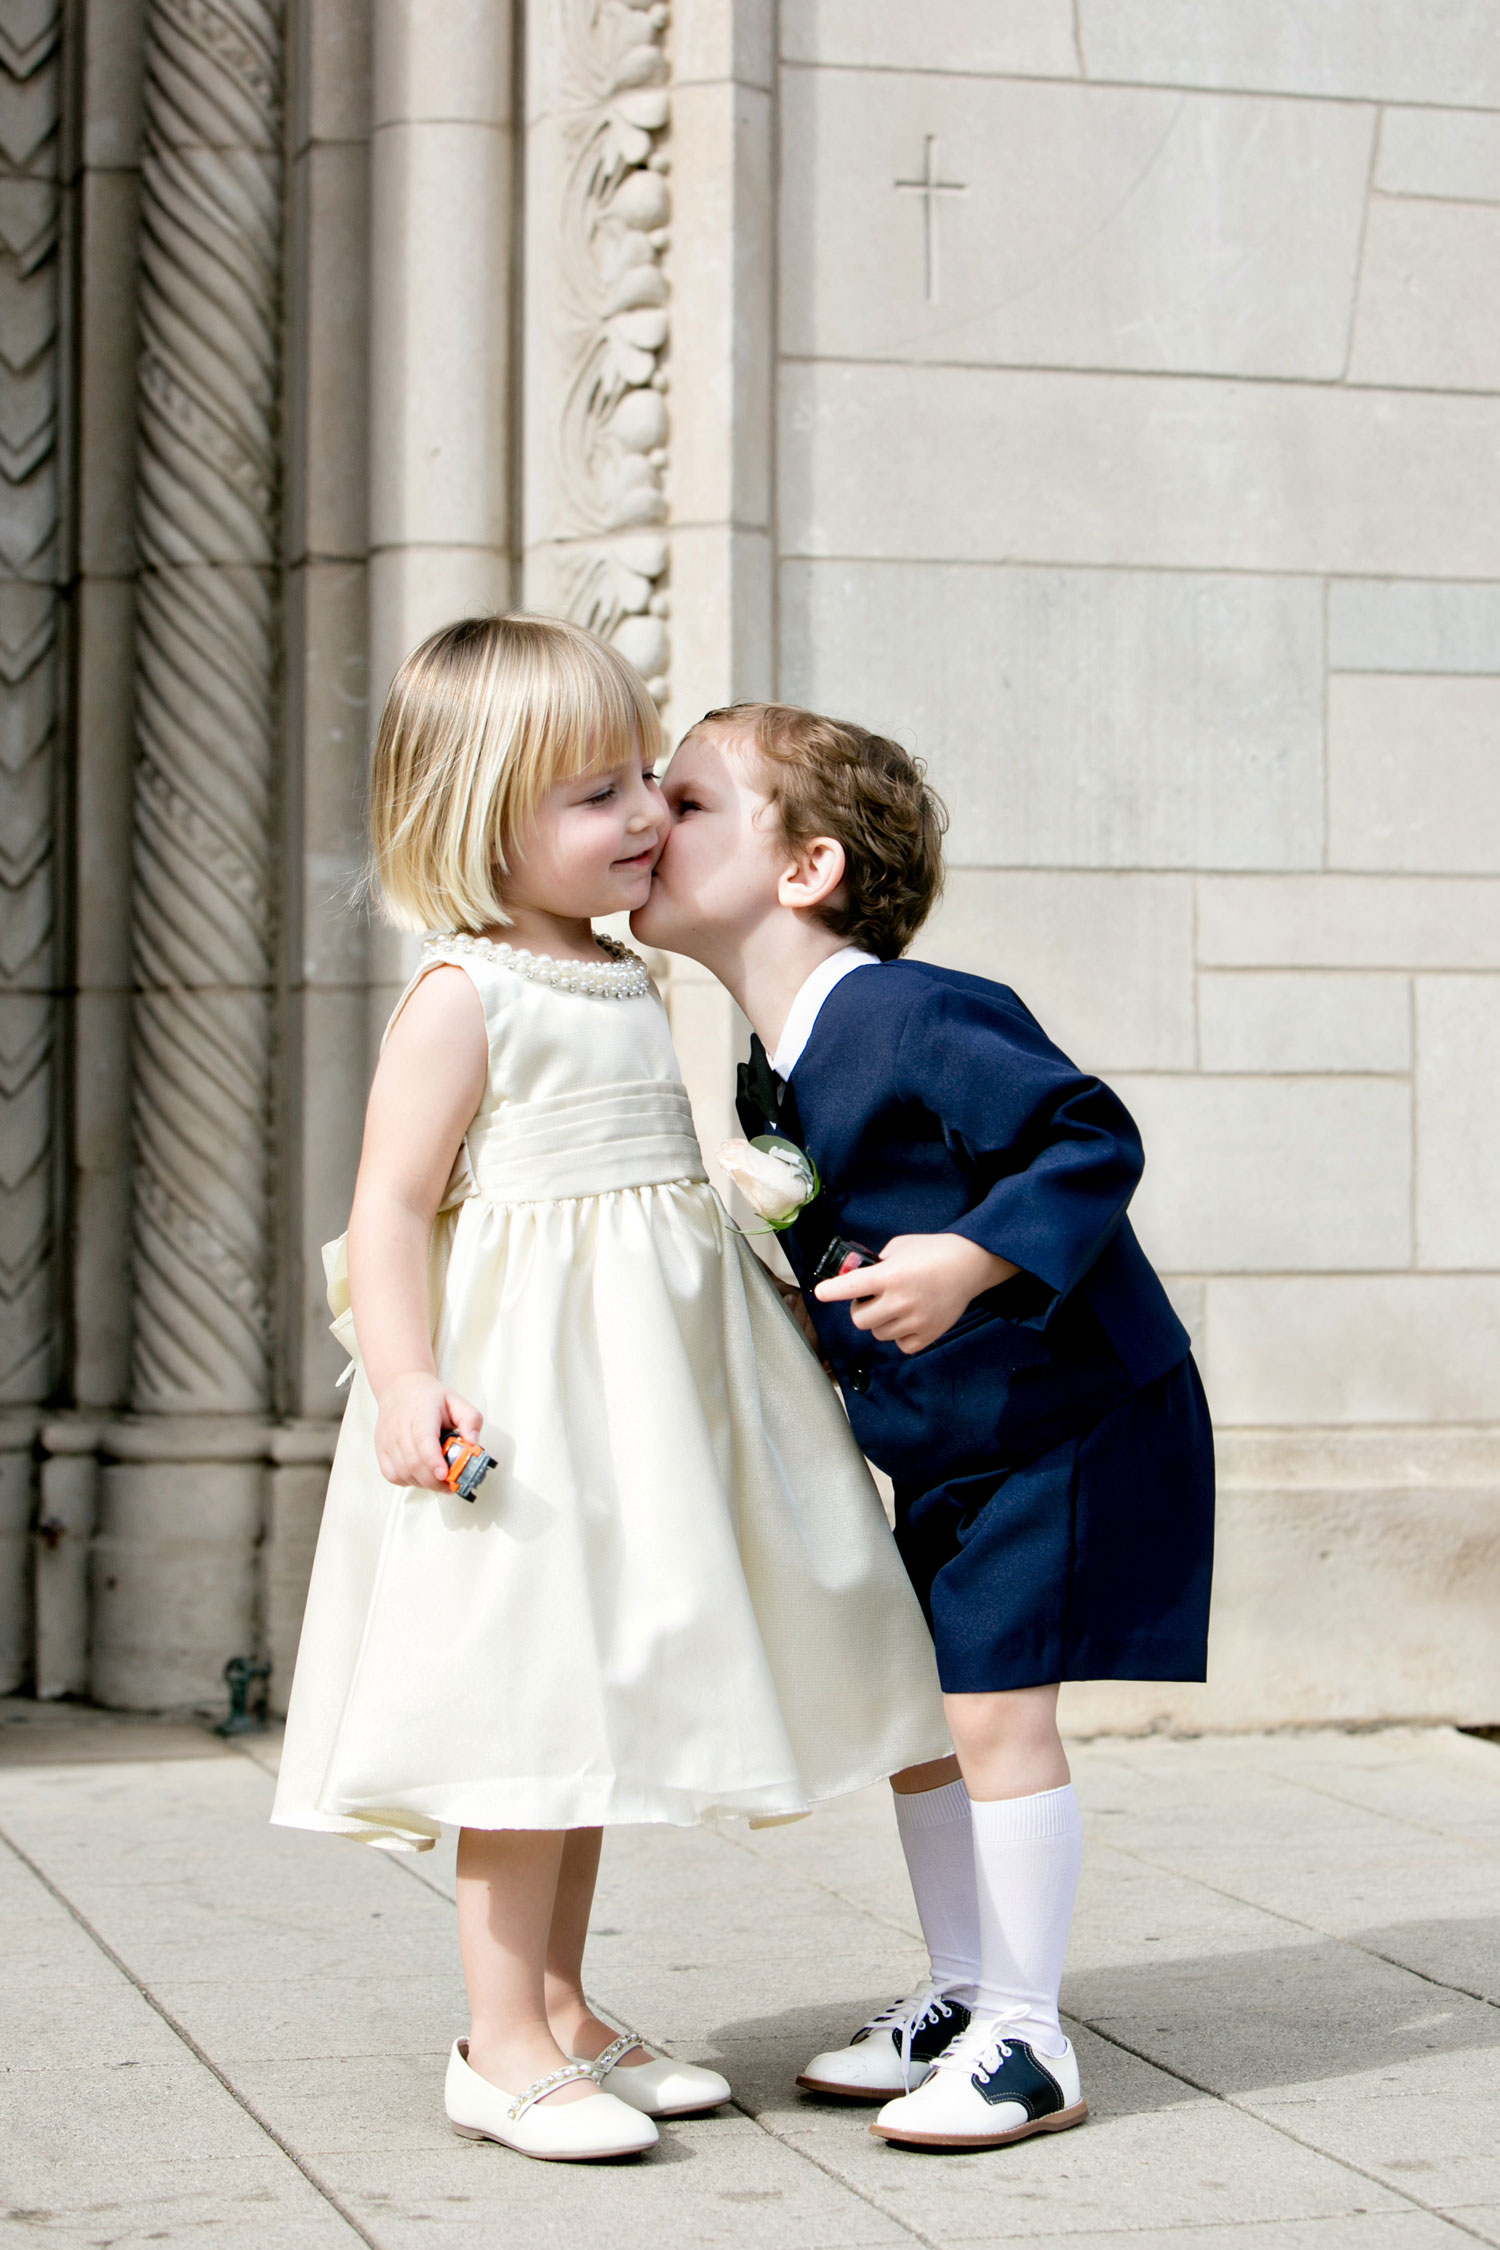 cute flower girl and ring bearer giving kiss at wedding old fashioned outfits short suit